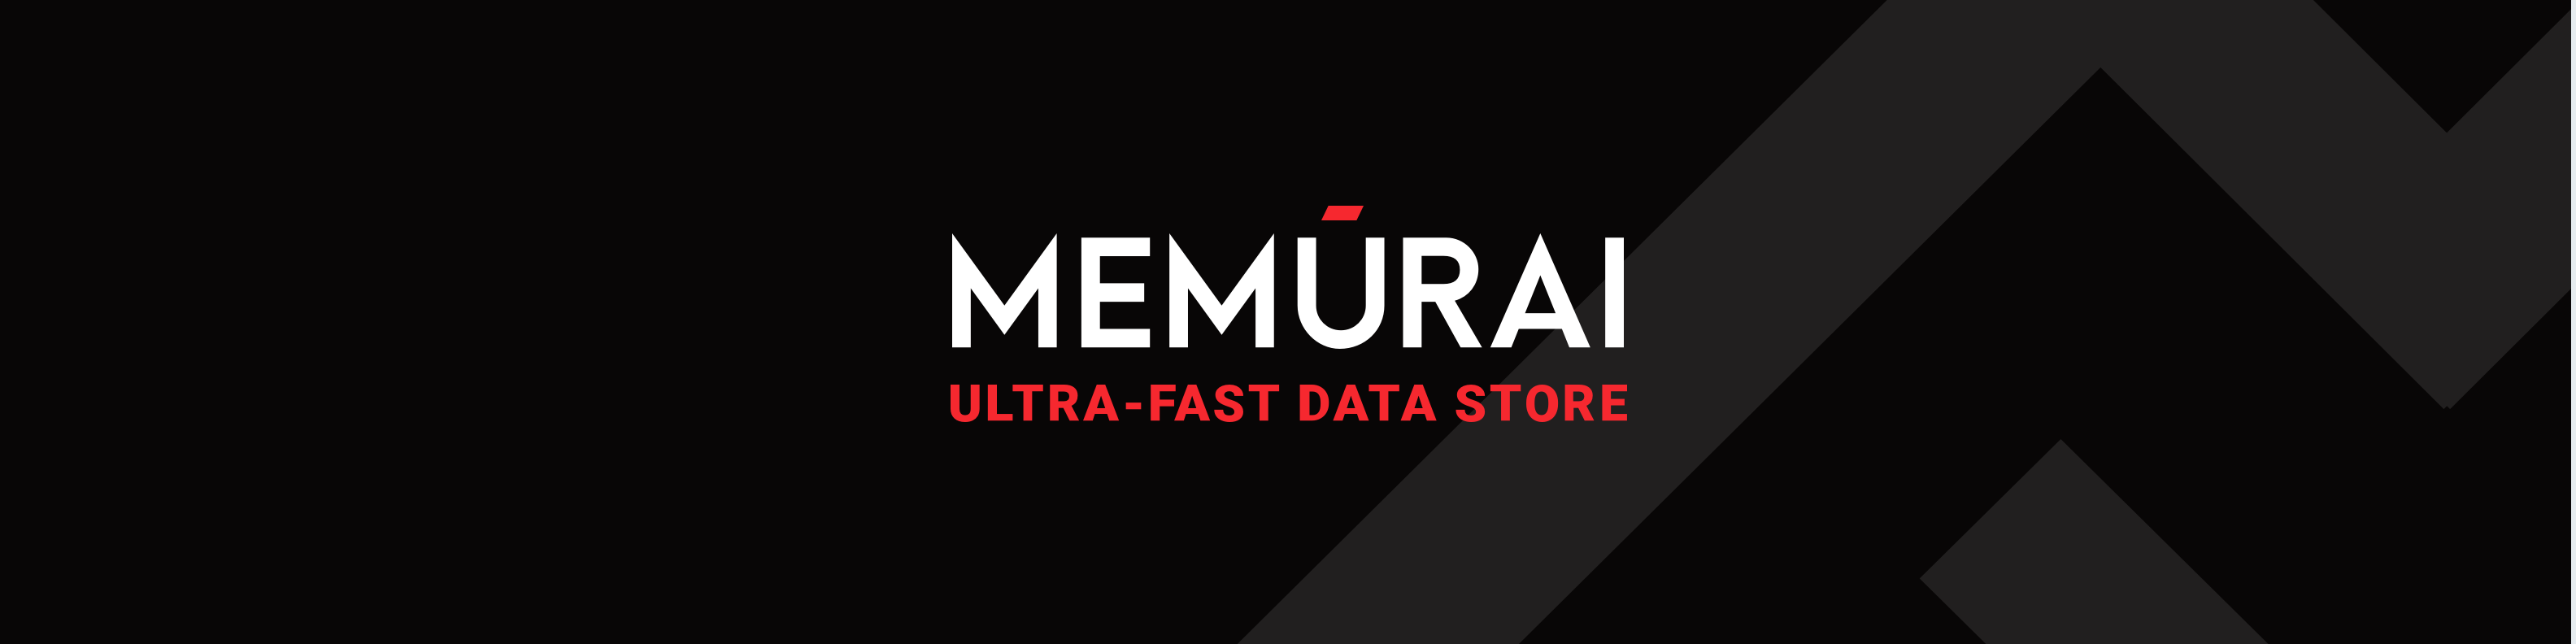 Logo and graphic for Memurai, a Redis-compatible cache and datastore